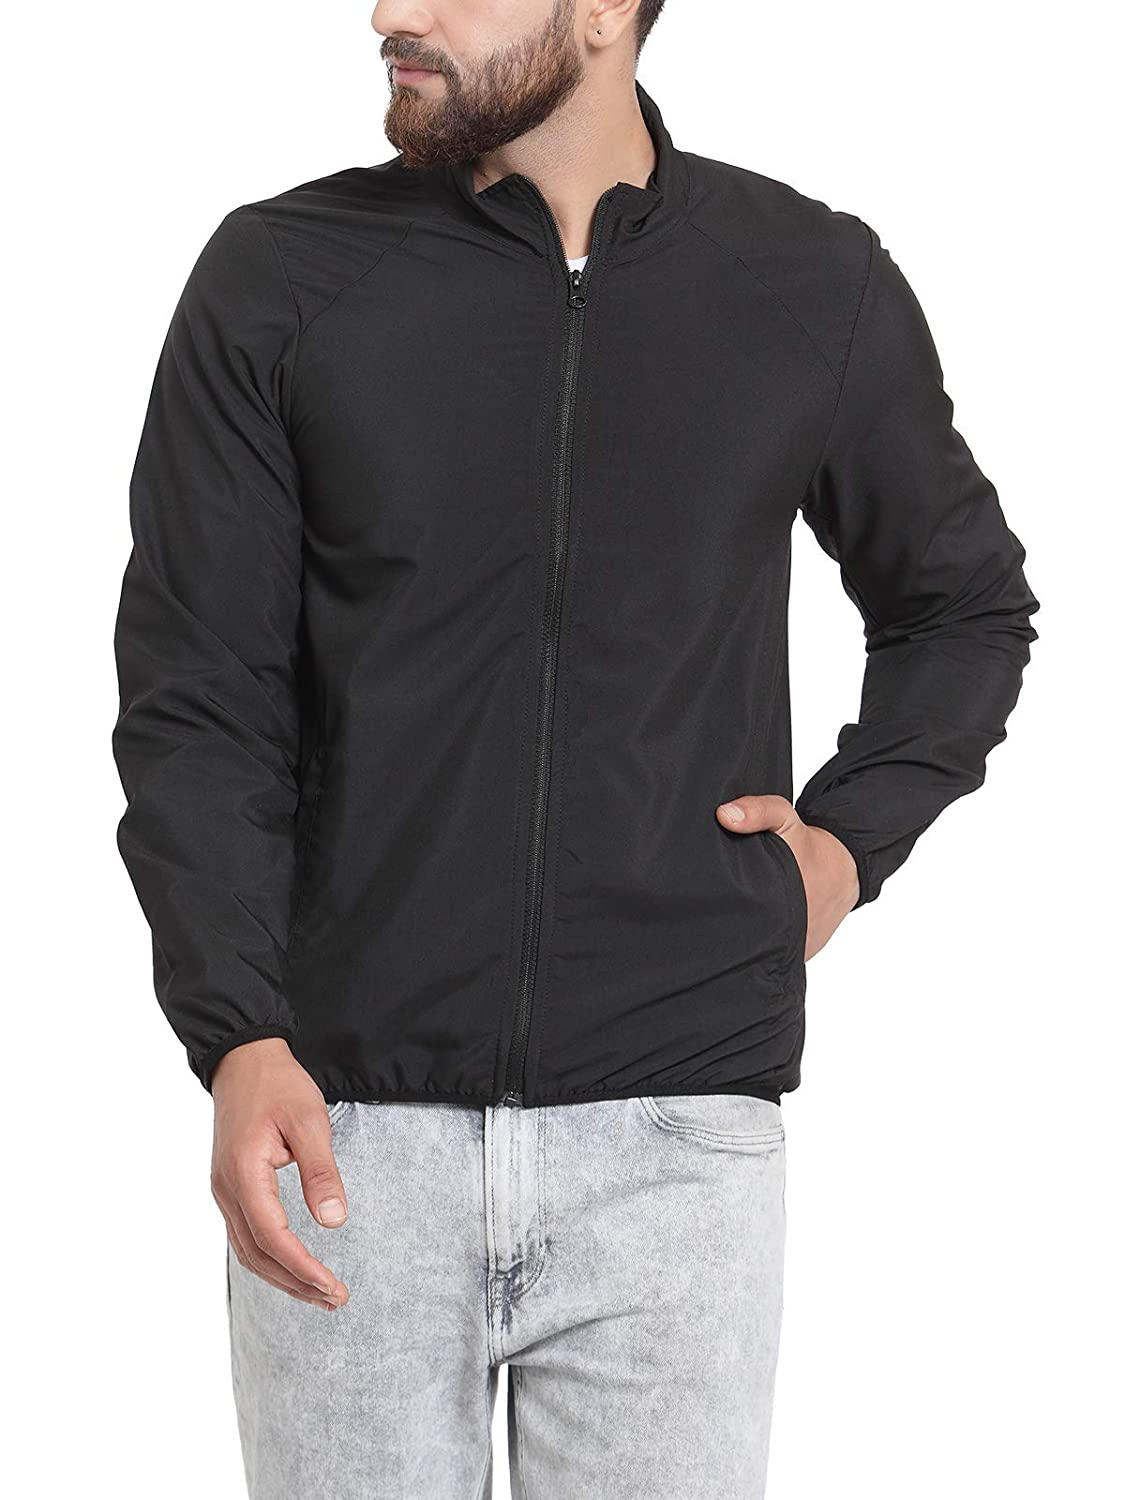 Scott I-DRY Signature Style Winter Jacket for Men